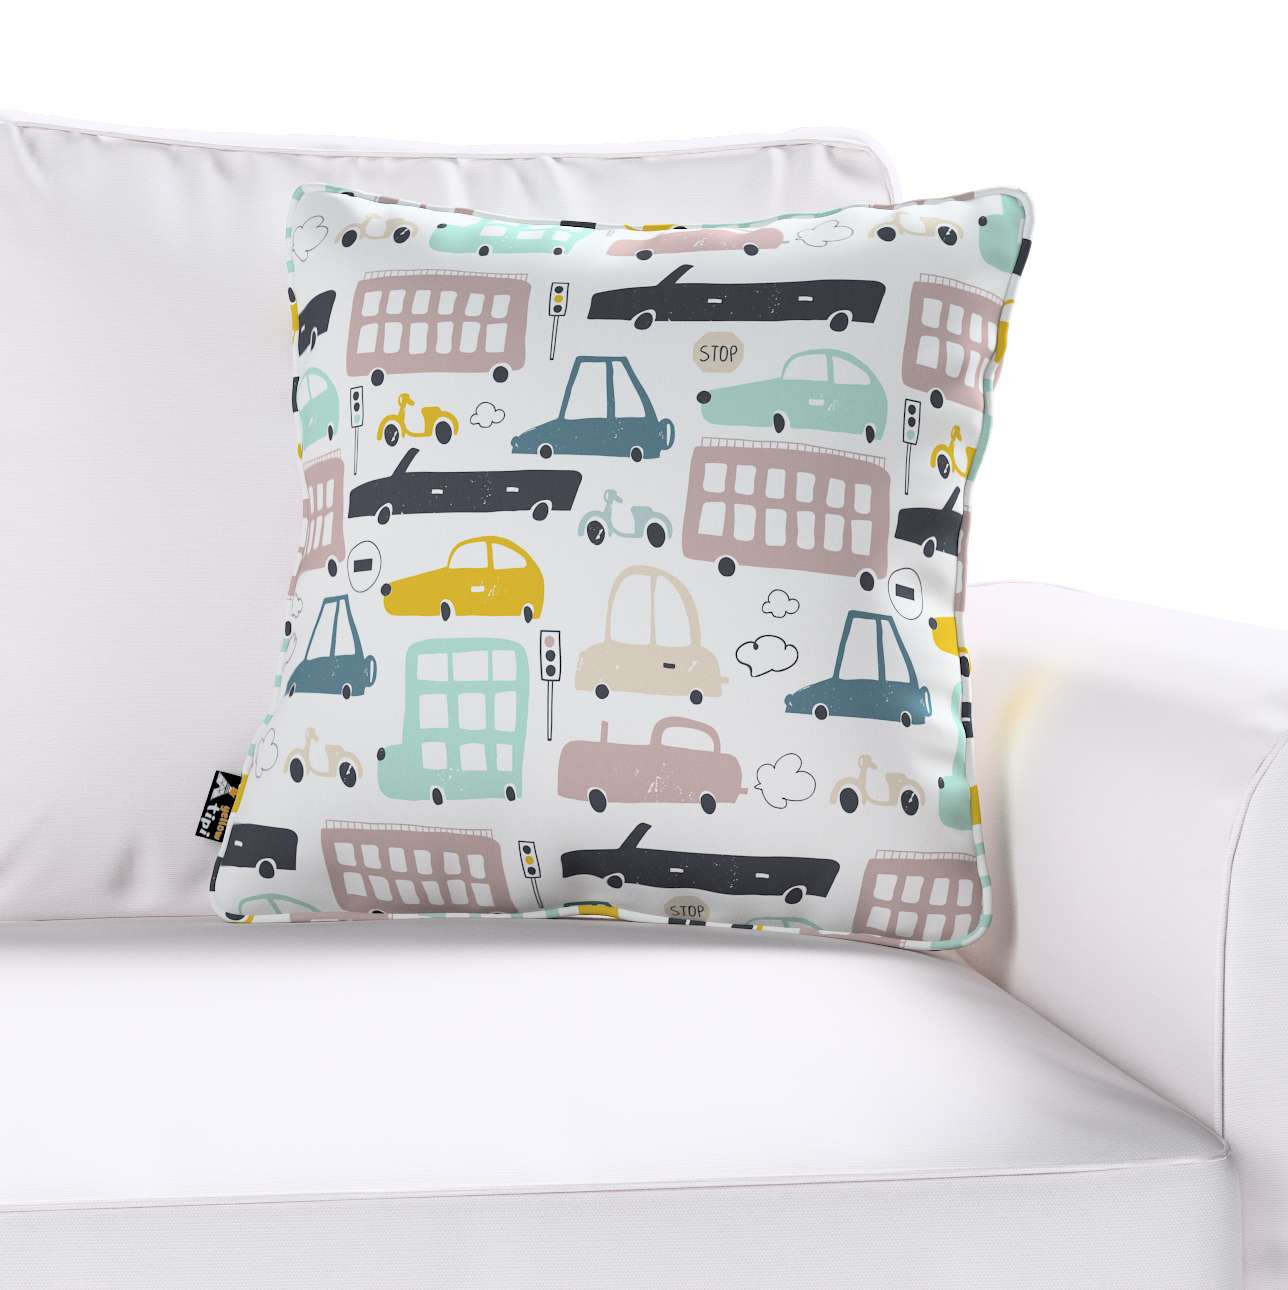 Lola piped cushion cover in collection Magic Collection, fabric: 500-02